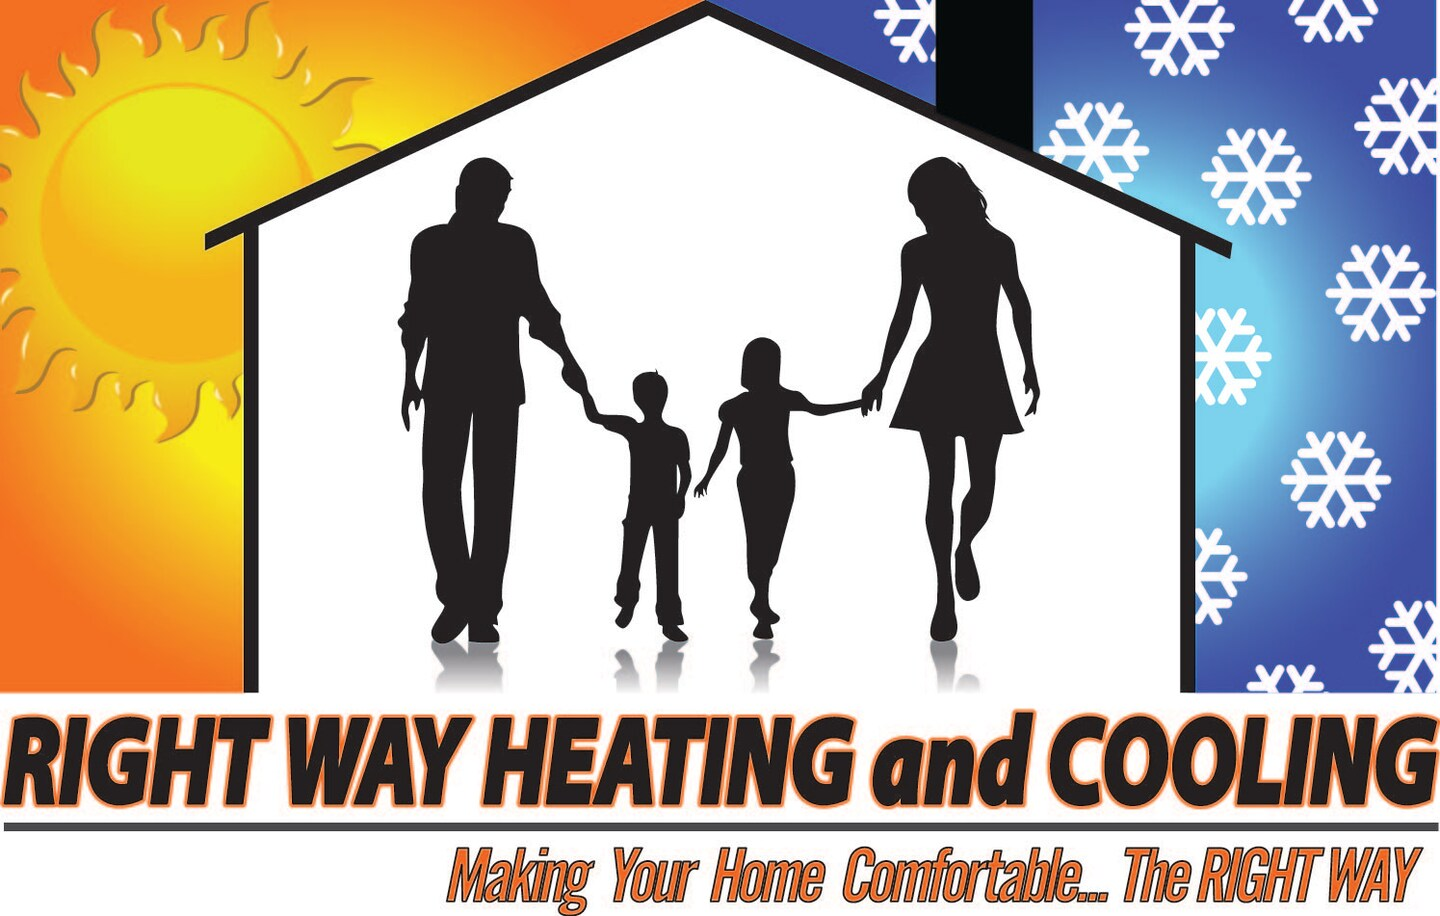 RIGHT WAY HEATING & COOLING